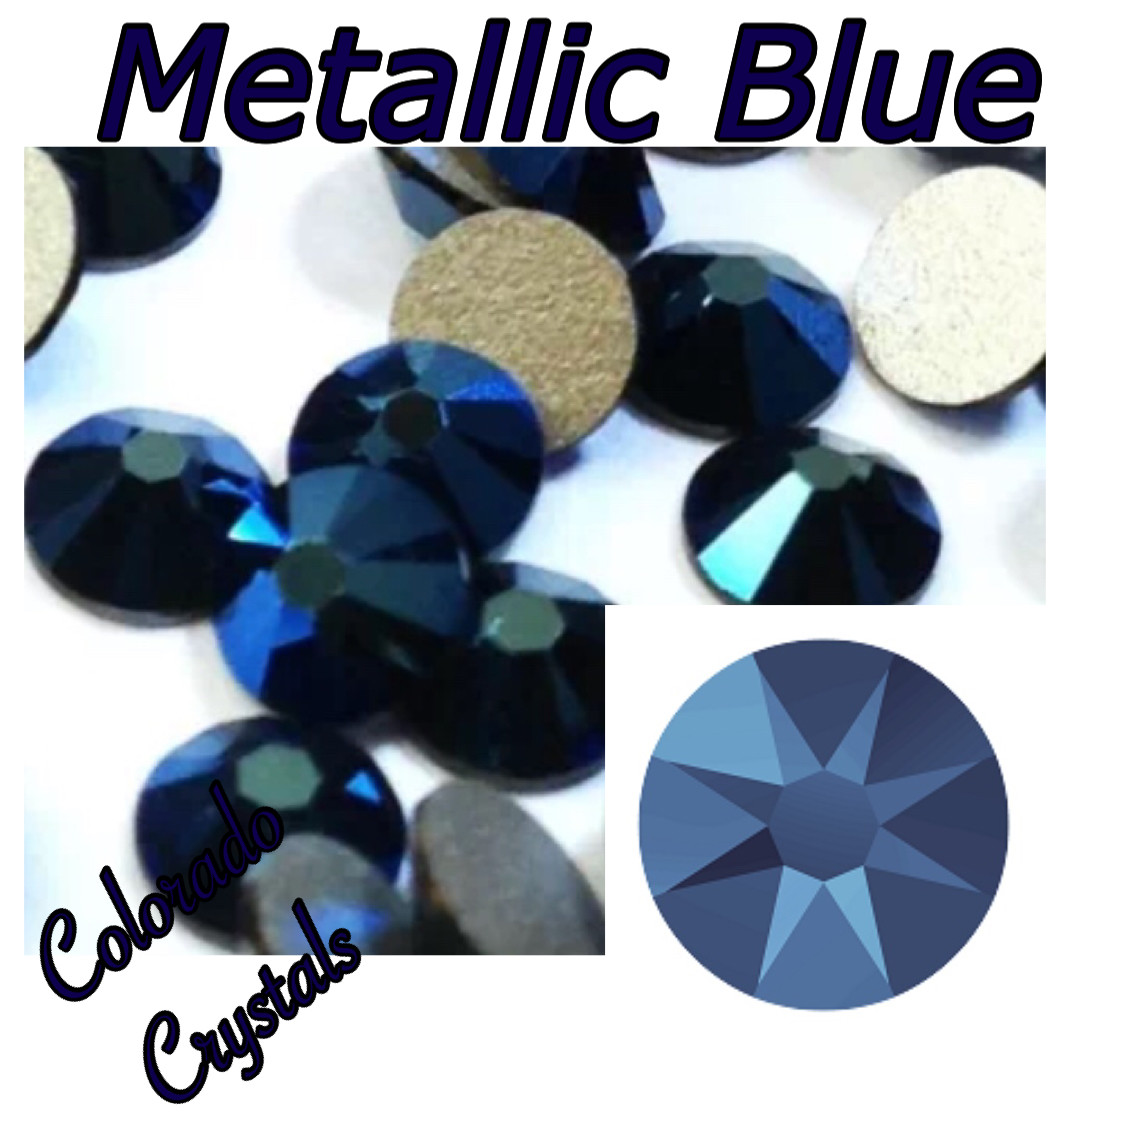 Metallic Blue (Crystal) 5ss 2058 Limited